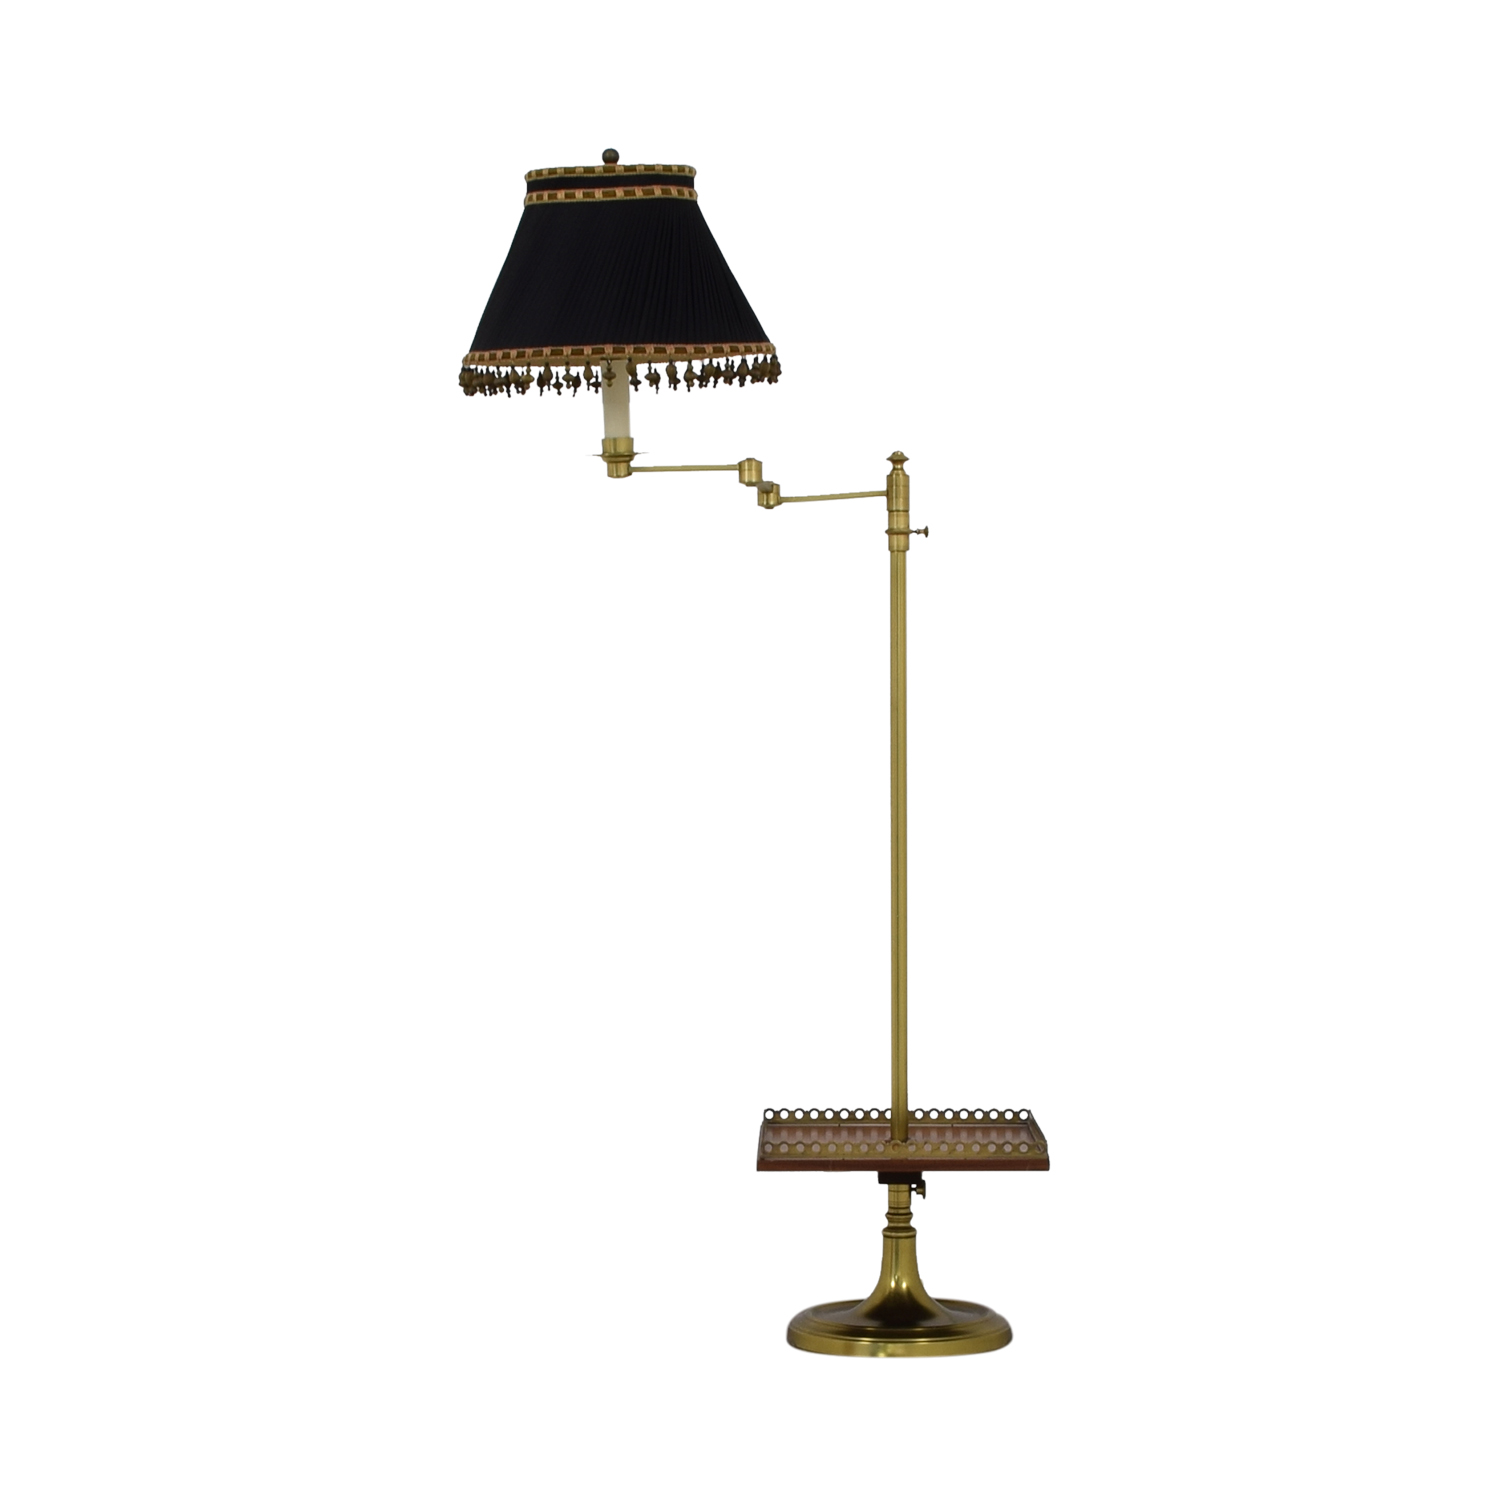 Brass Lamp with Tray